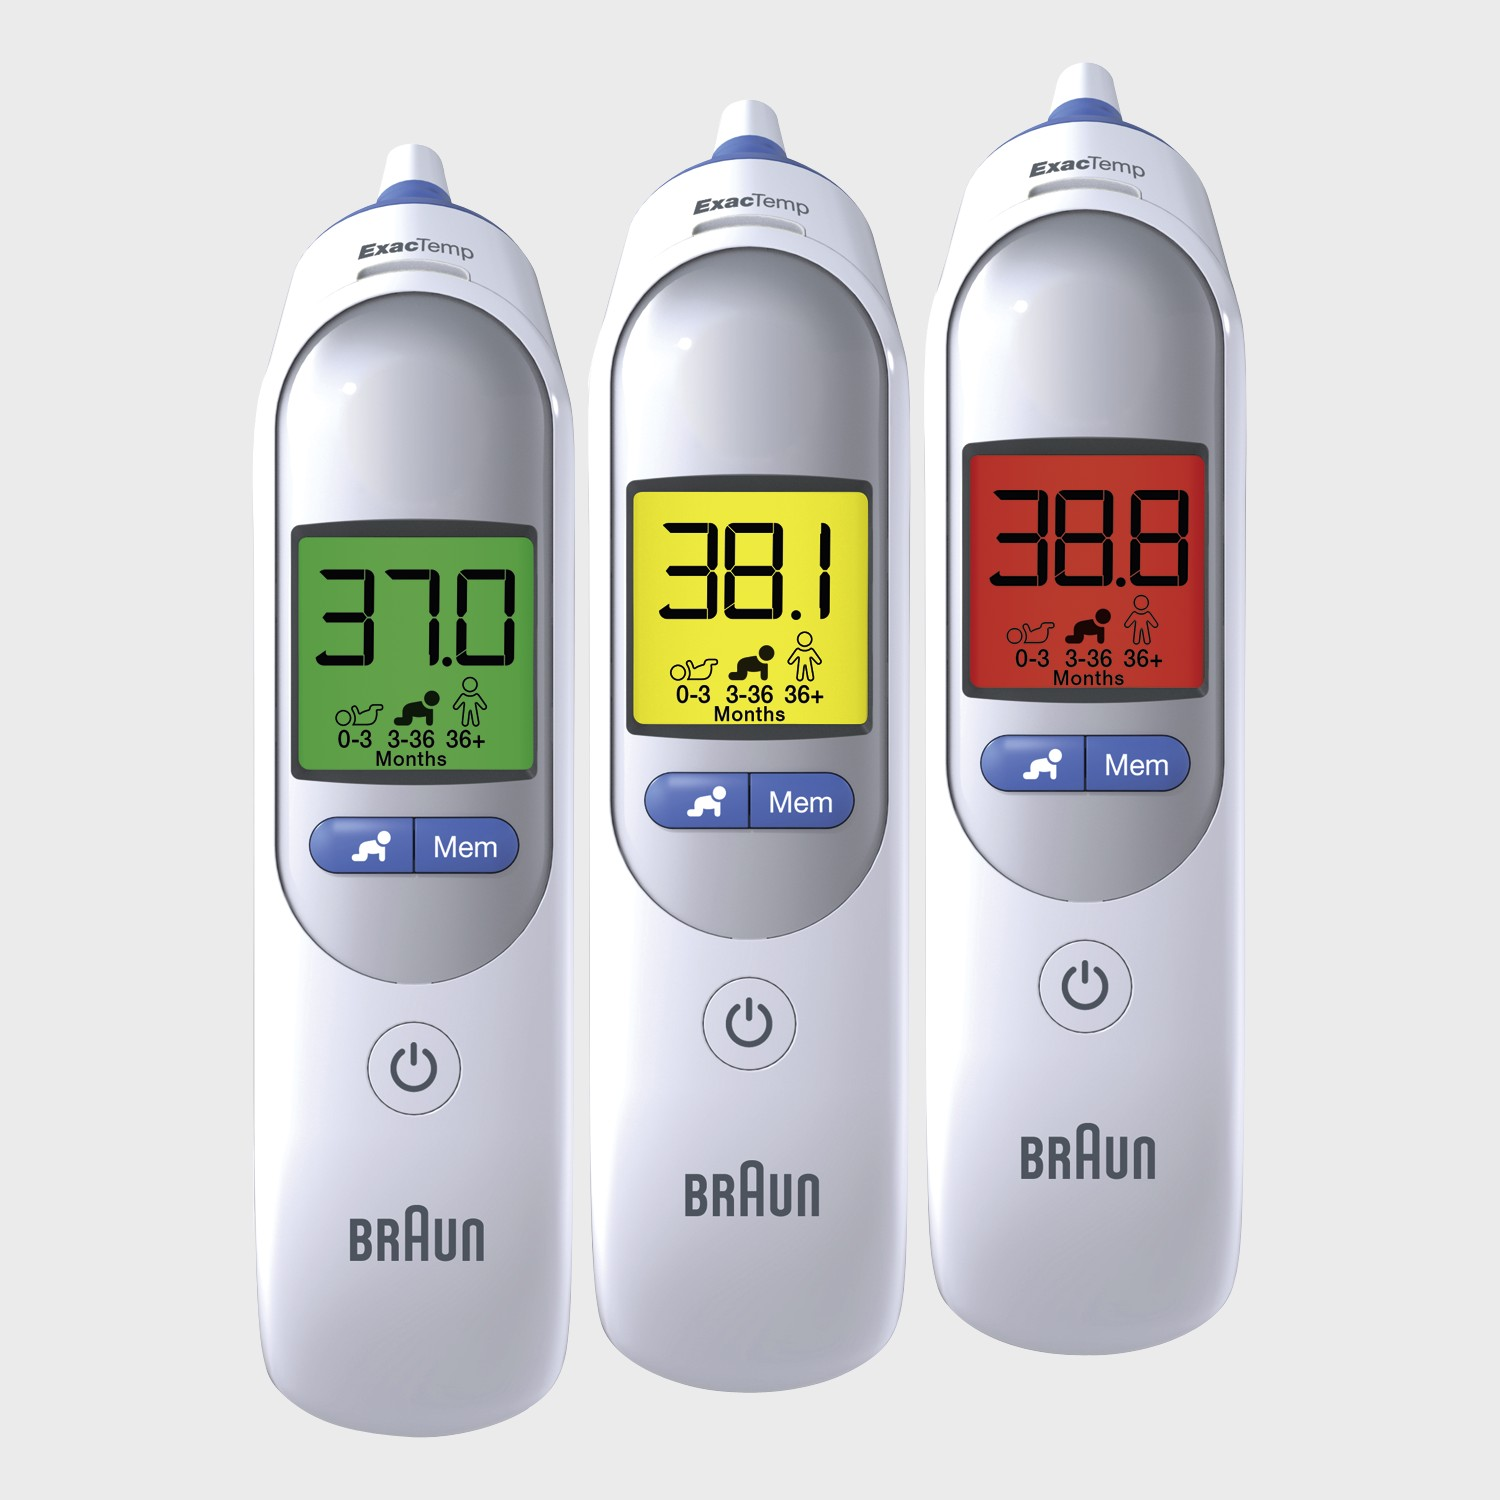 Braun PRO4000 Thermoscan Tympanic Thermometer